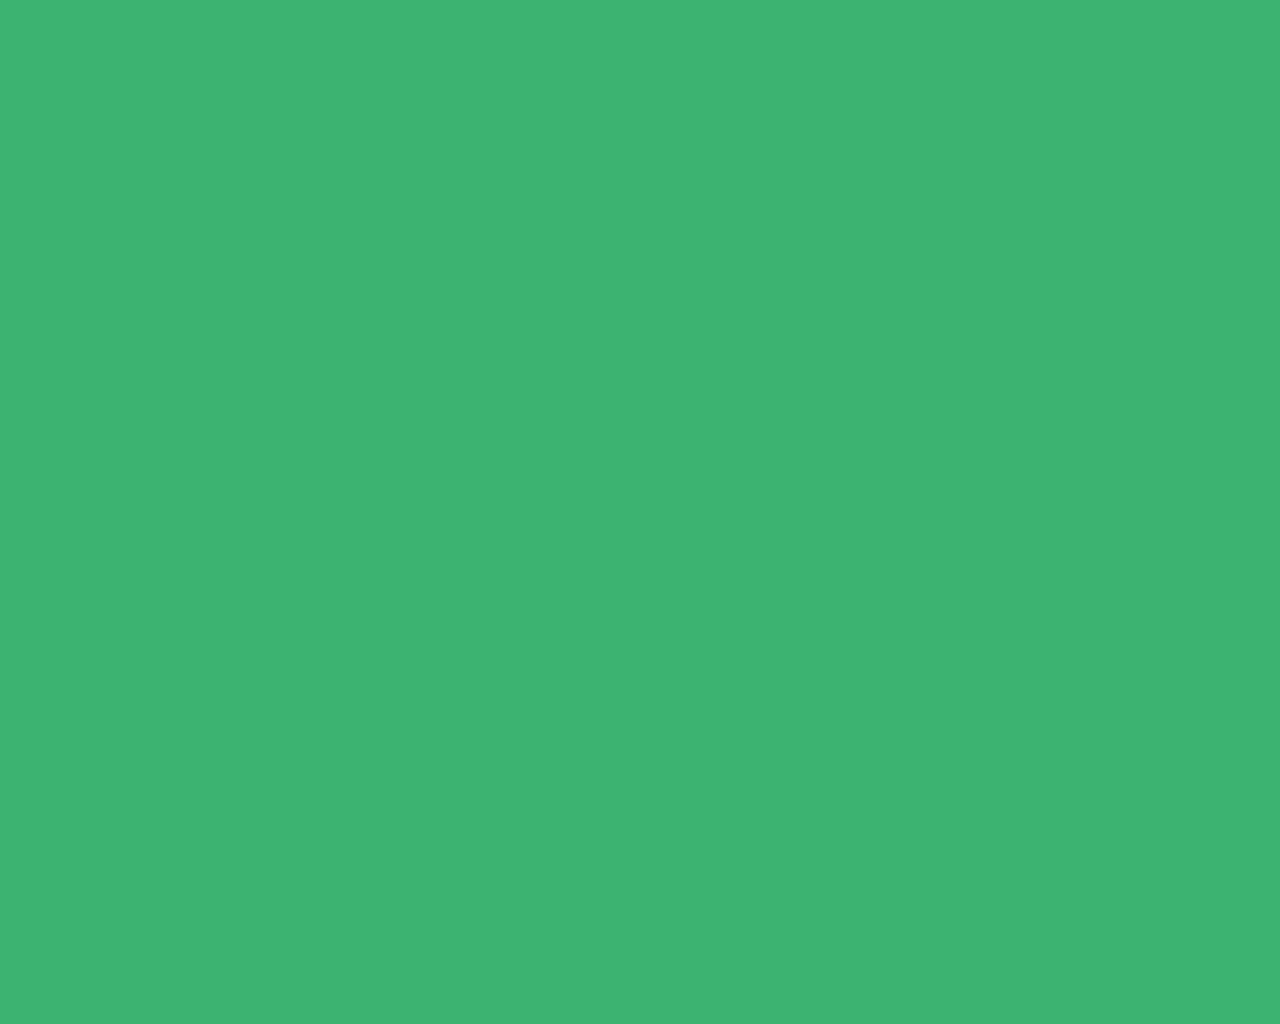 1280x1024 Medium Sea Green Solid Color Background